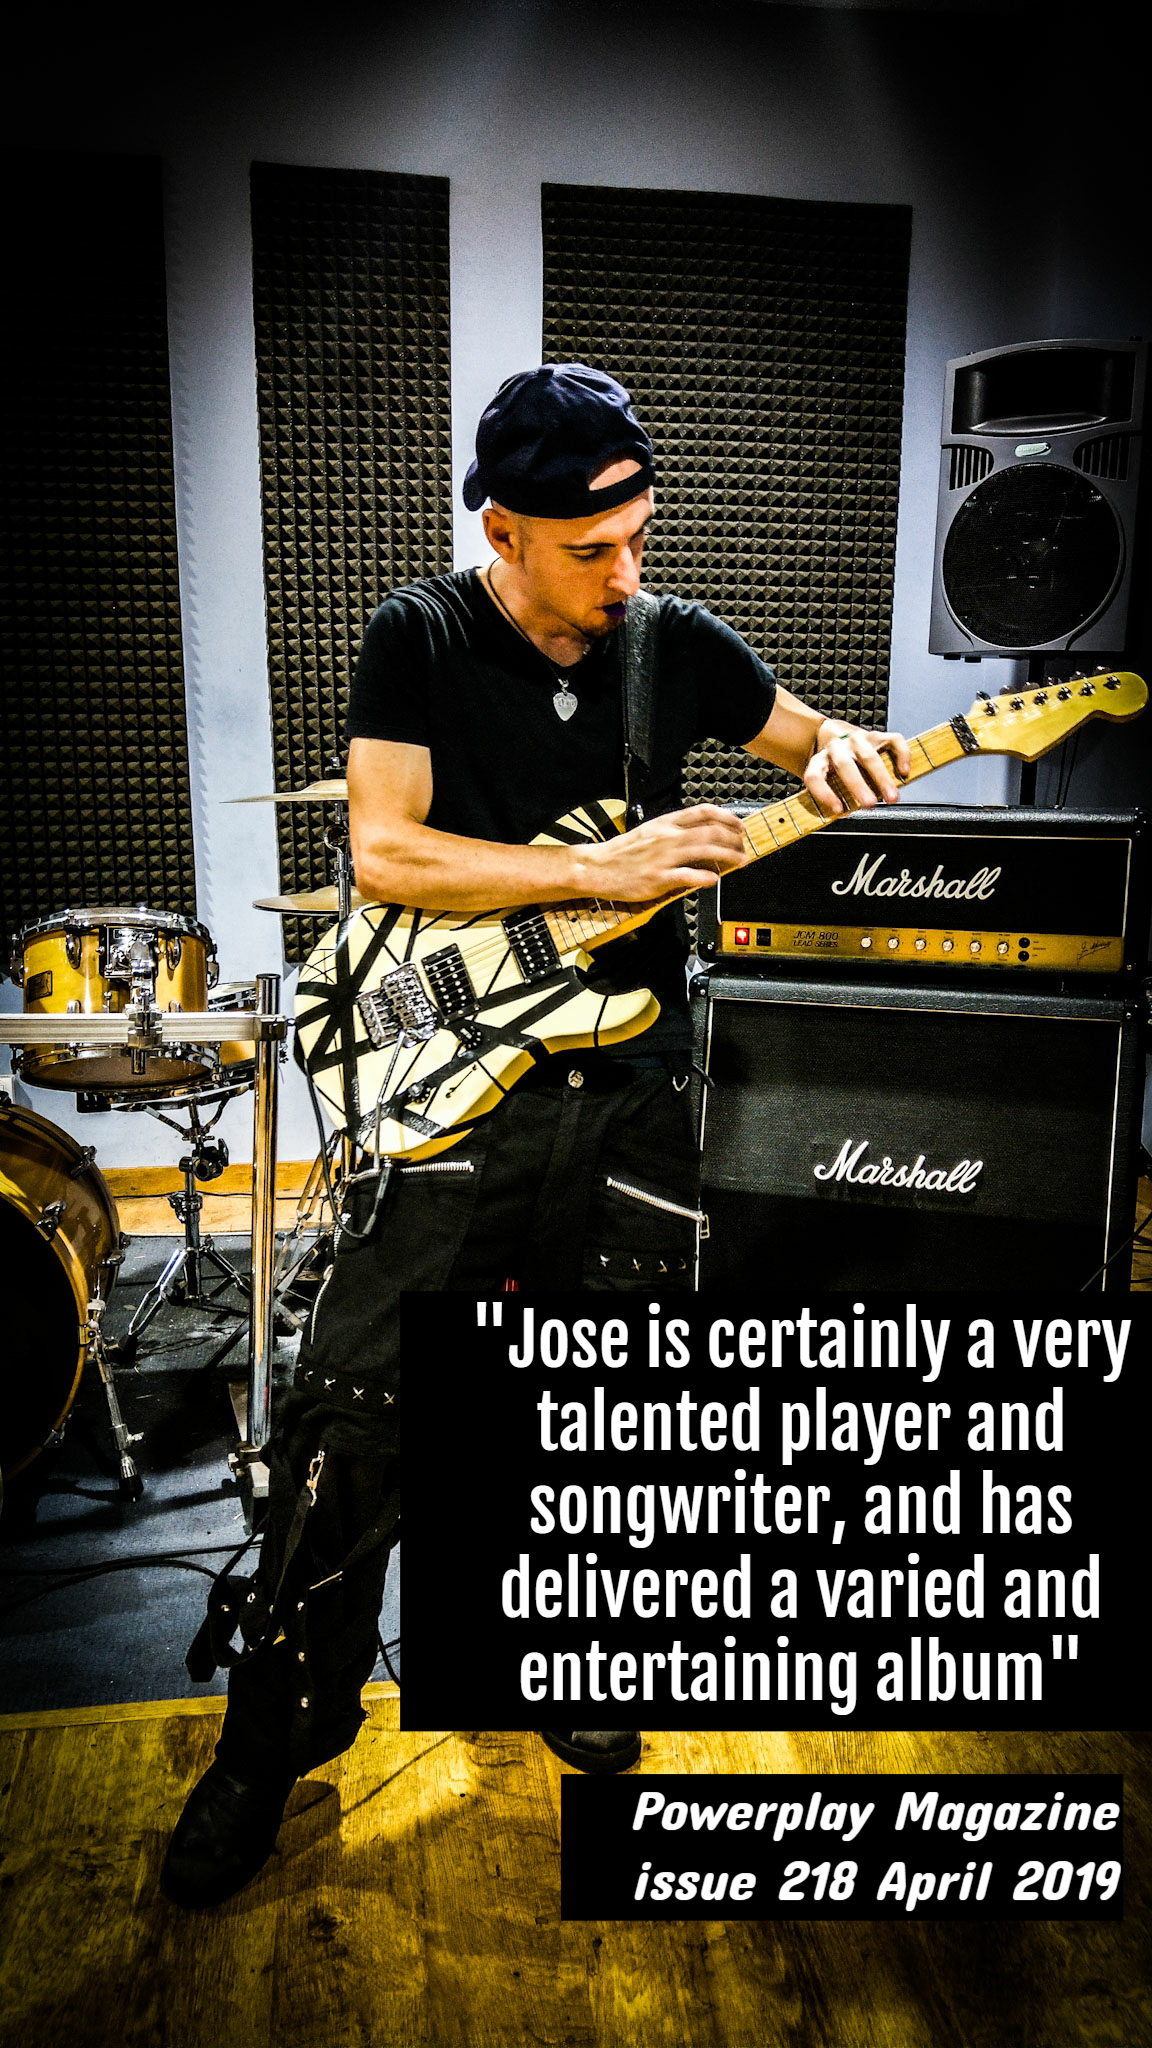 Powerplay quote picture